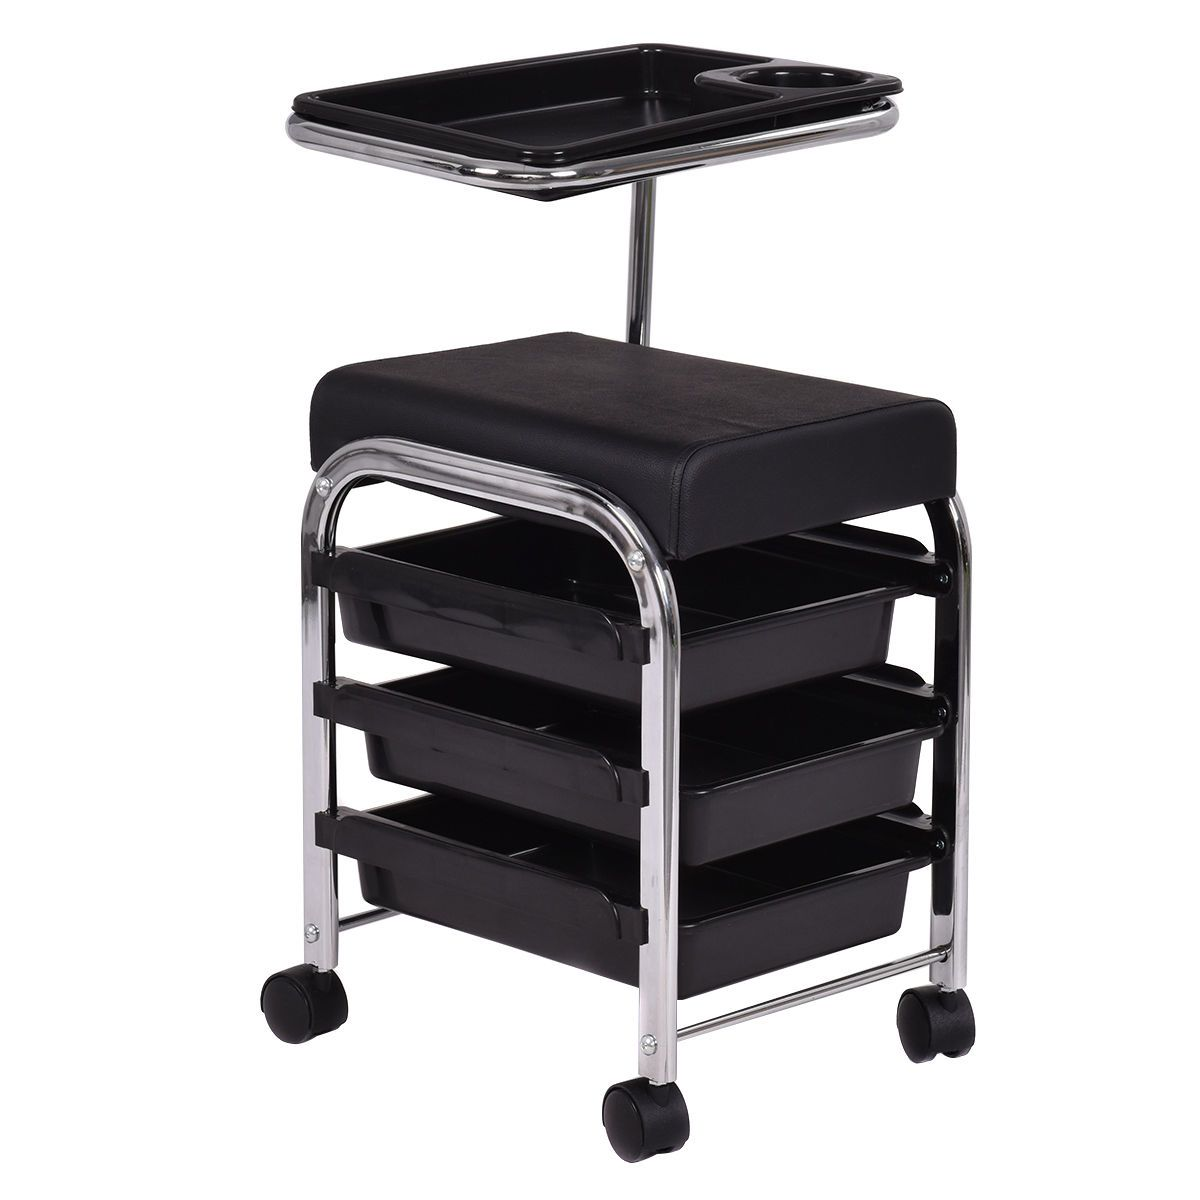 Black Pedicure Manicure Nail Cart Trolley Stool Chair Salon SPA With Shelves  sc 1 st  Pinterest & Black Pedicure Manicure Nail Cart Trolley Stool Chair Salon SPA ... islam-shia.org